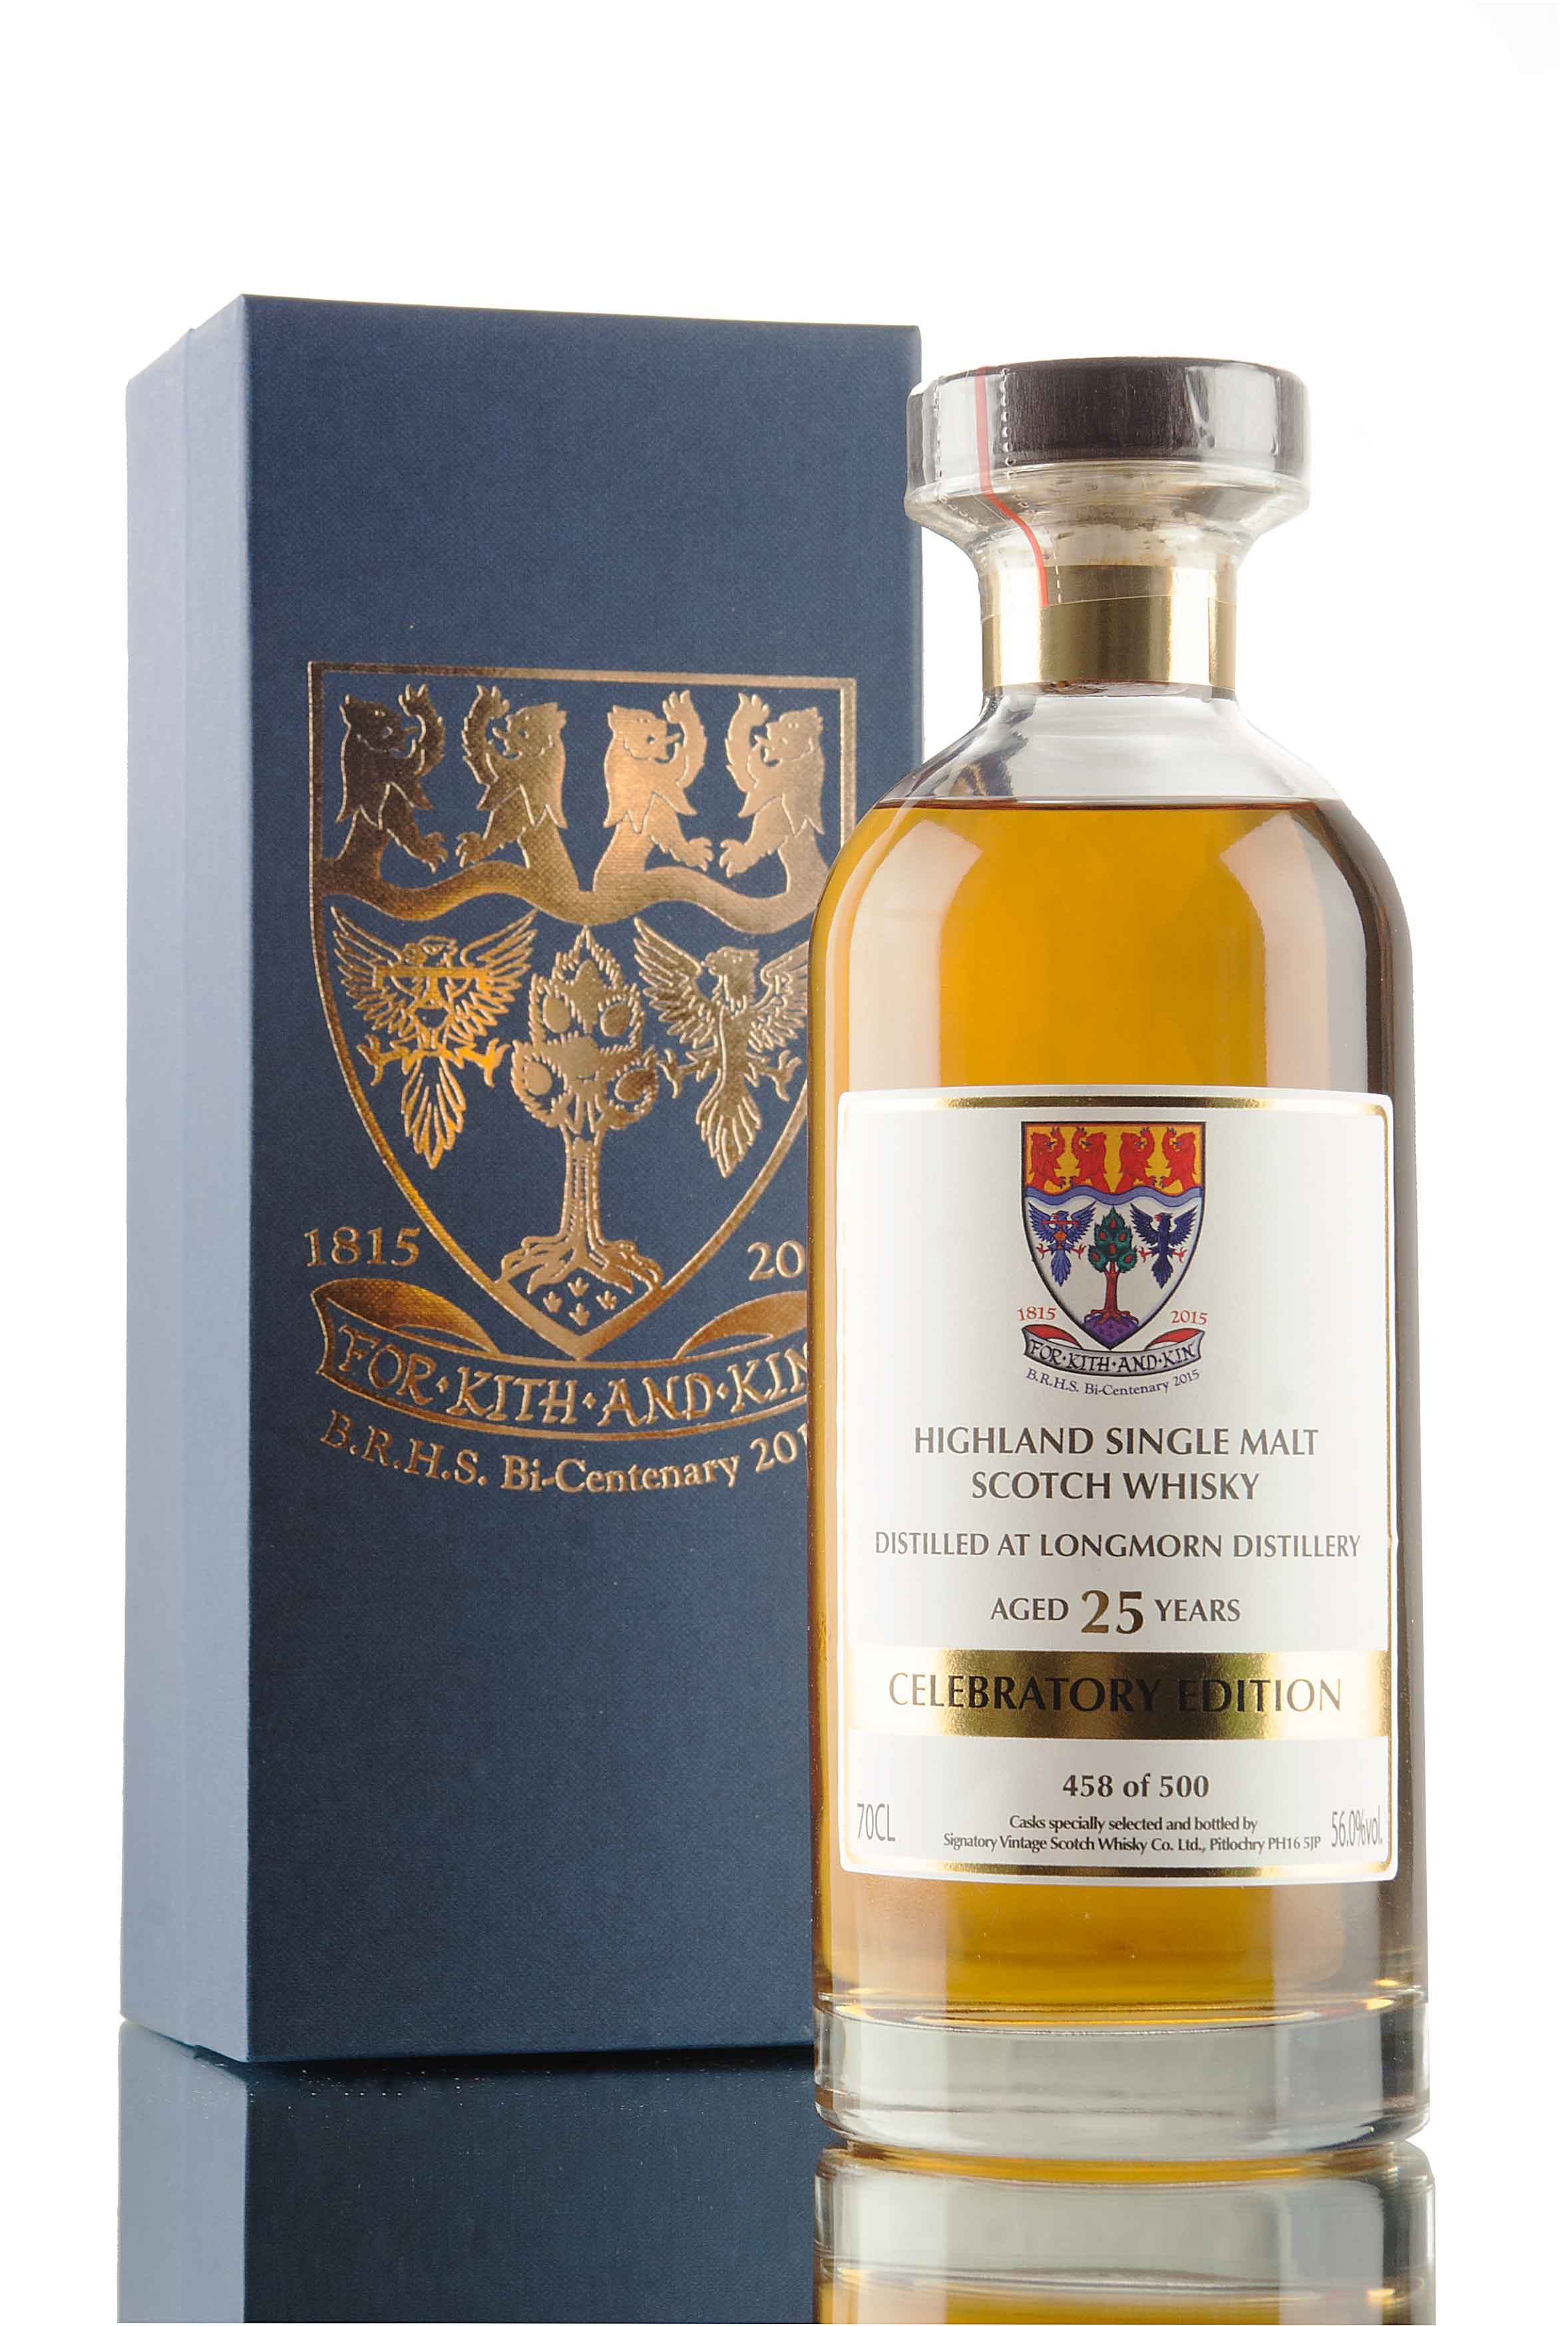 Longmorn 25 Year Old Celebratory Edition